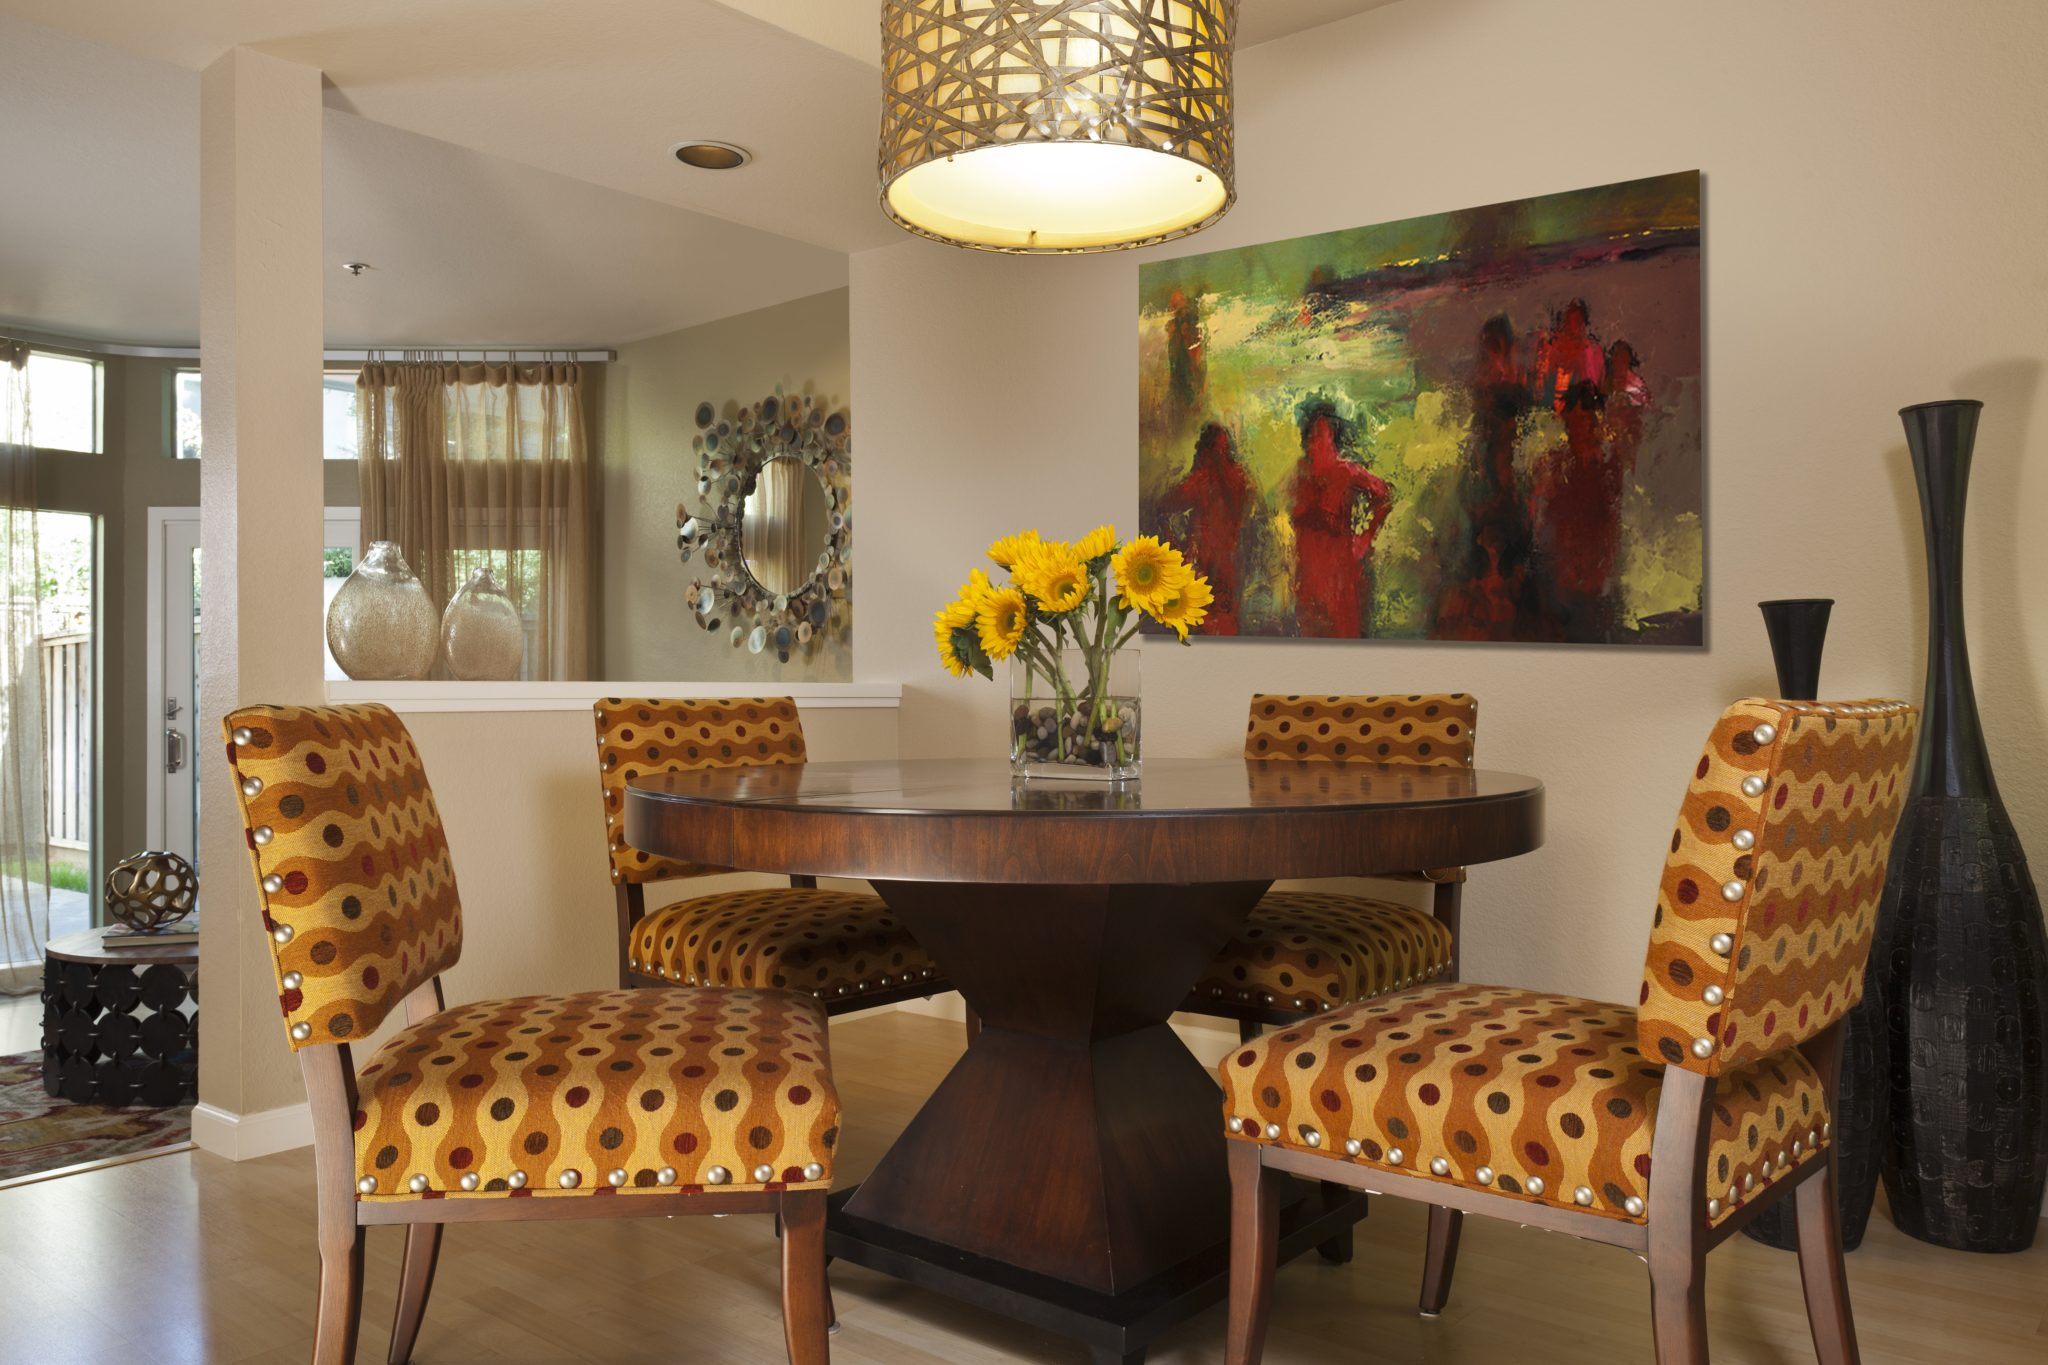 Dining room featuring around pedestal table with patterned chairs and drum pendant by Alison Whittaker Design